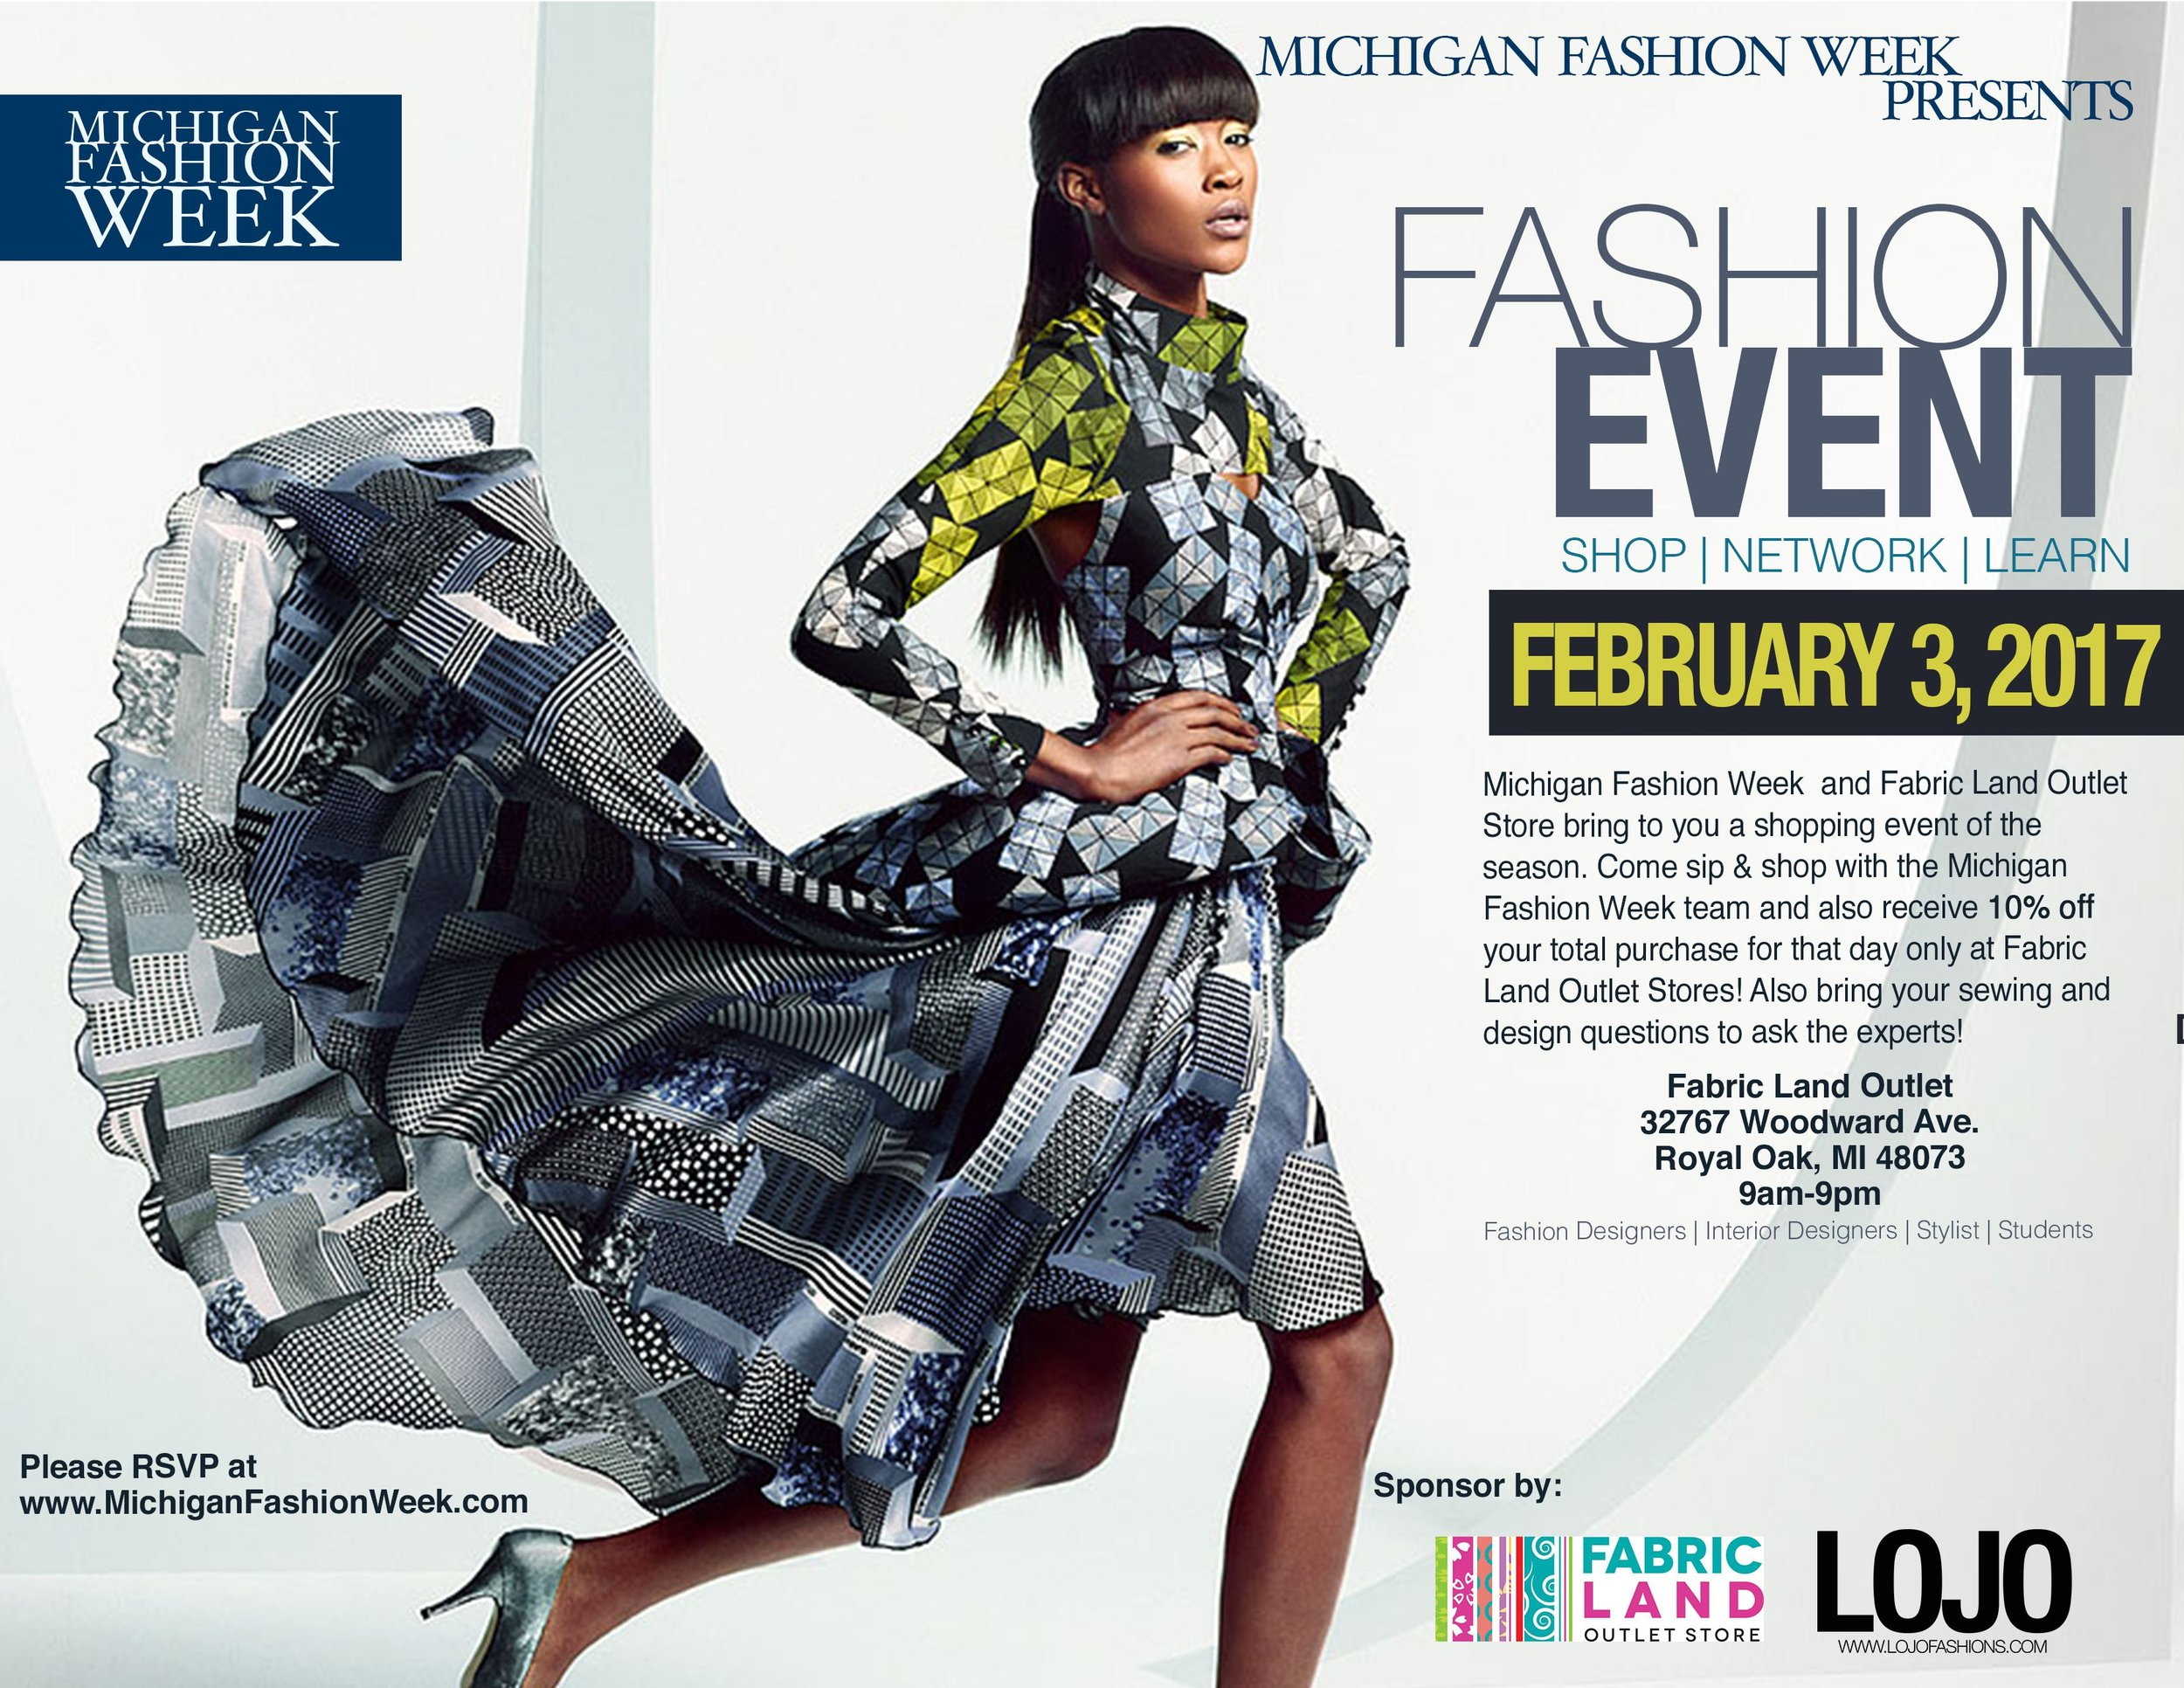 What's New with Michigan Fashion Week? -